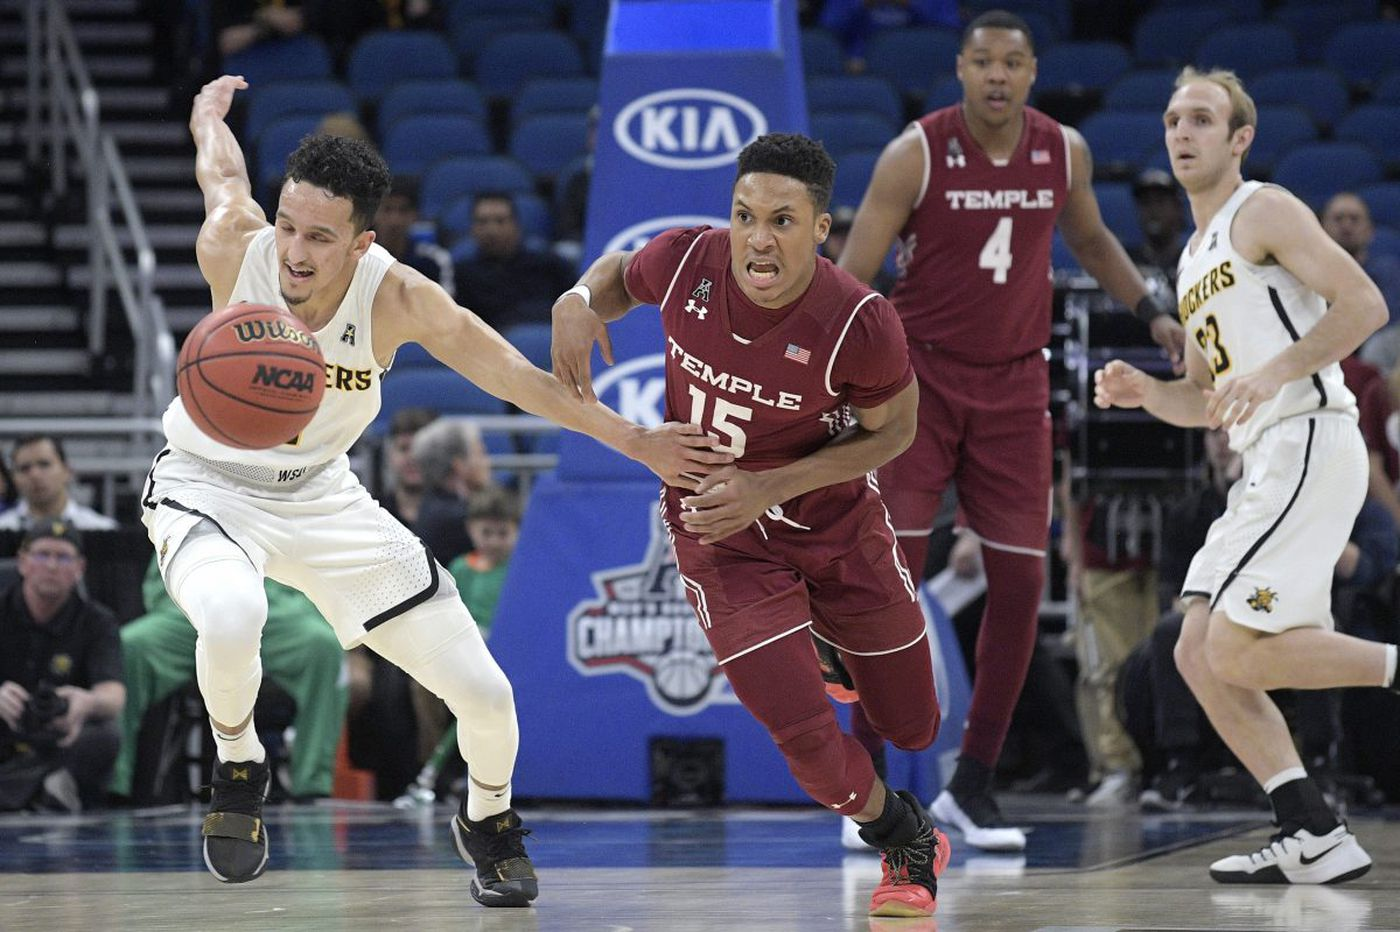 Temple outpaced by Wichita State's Landry Shamet, loses in conference quarterfinal